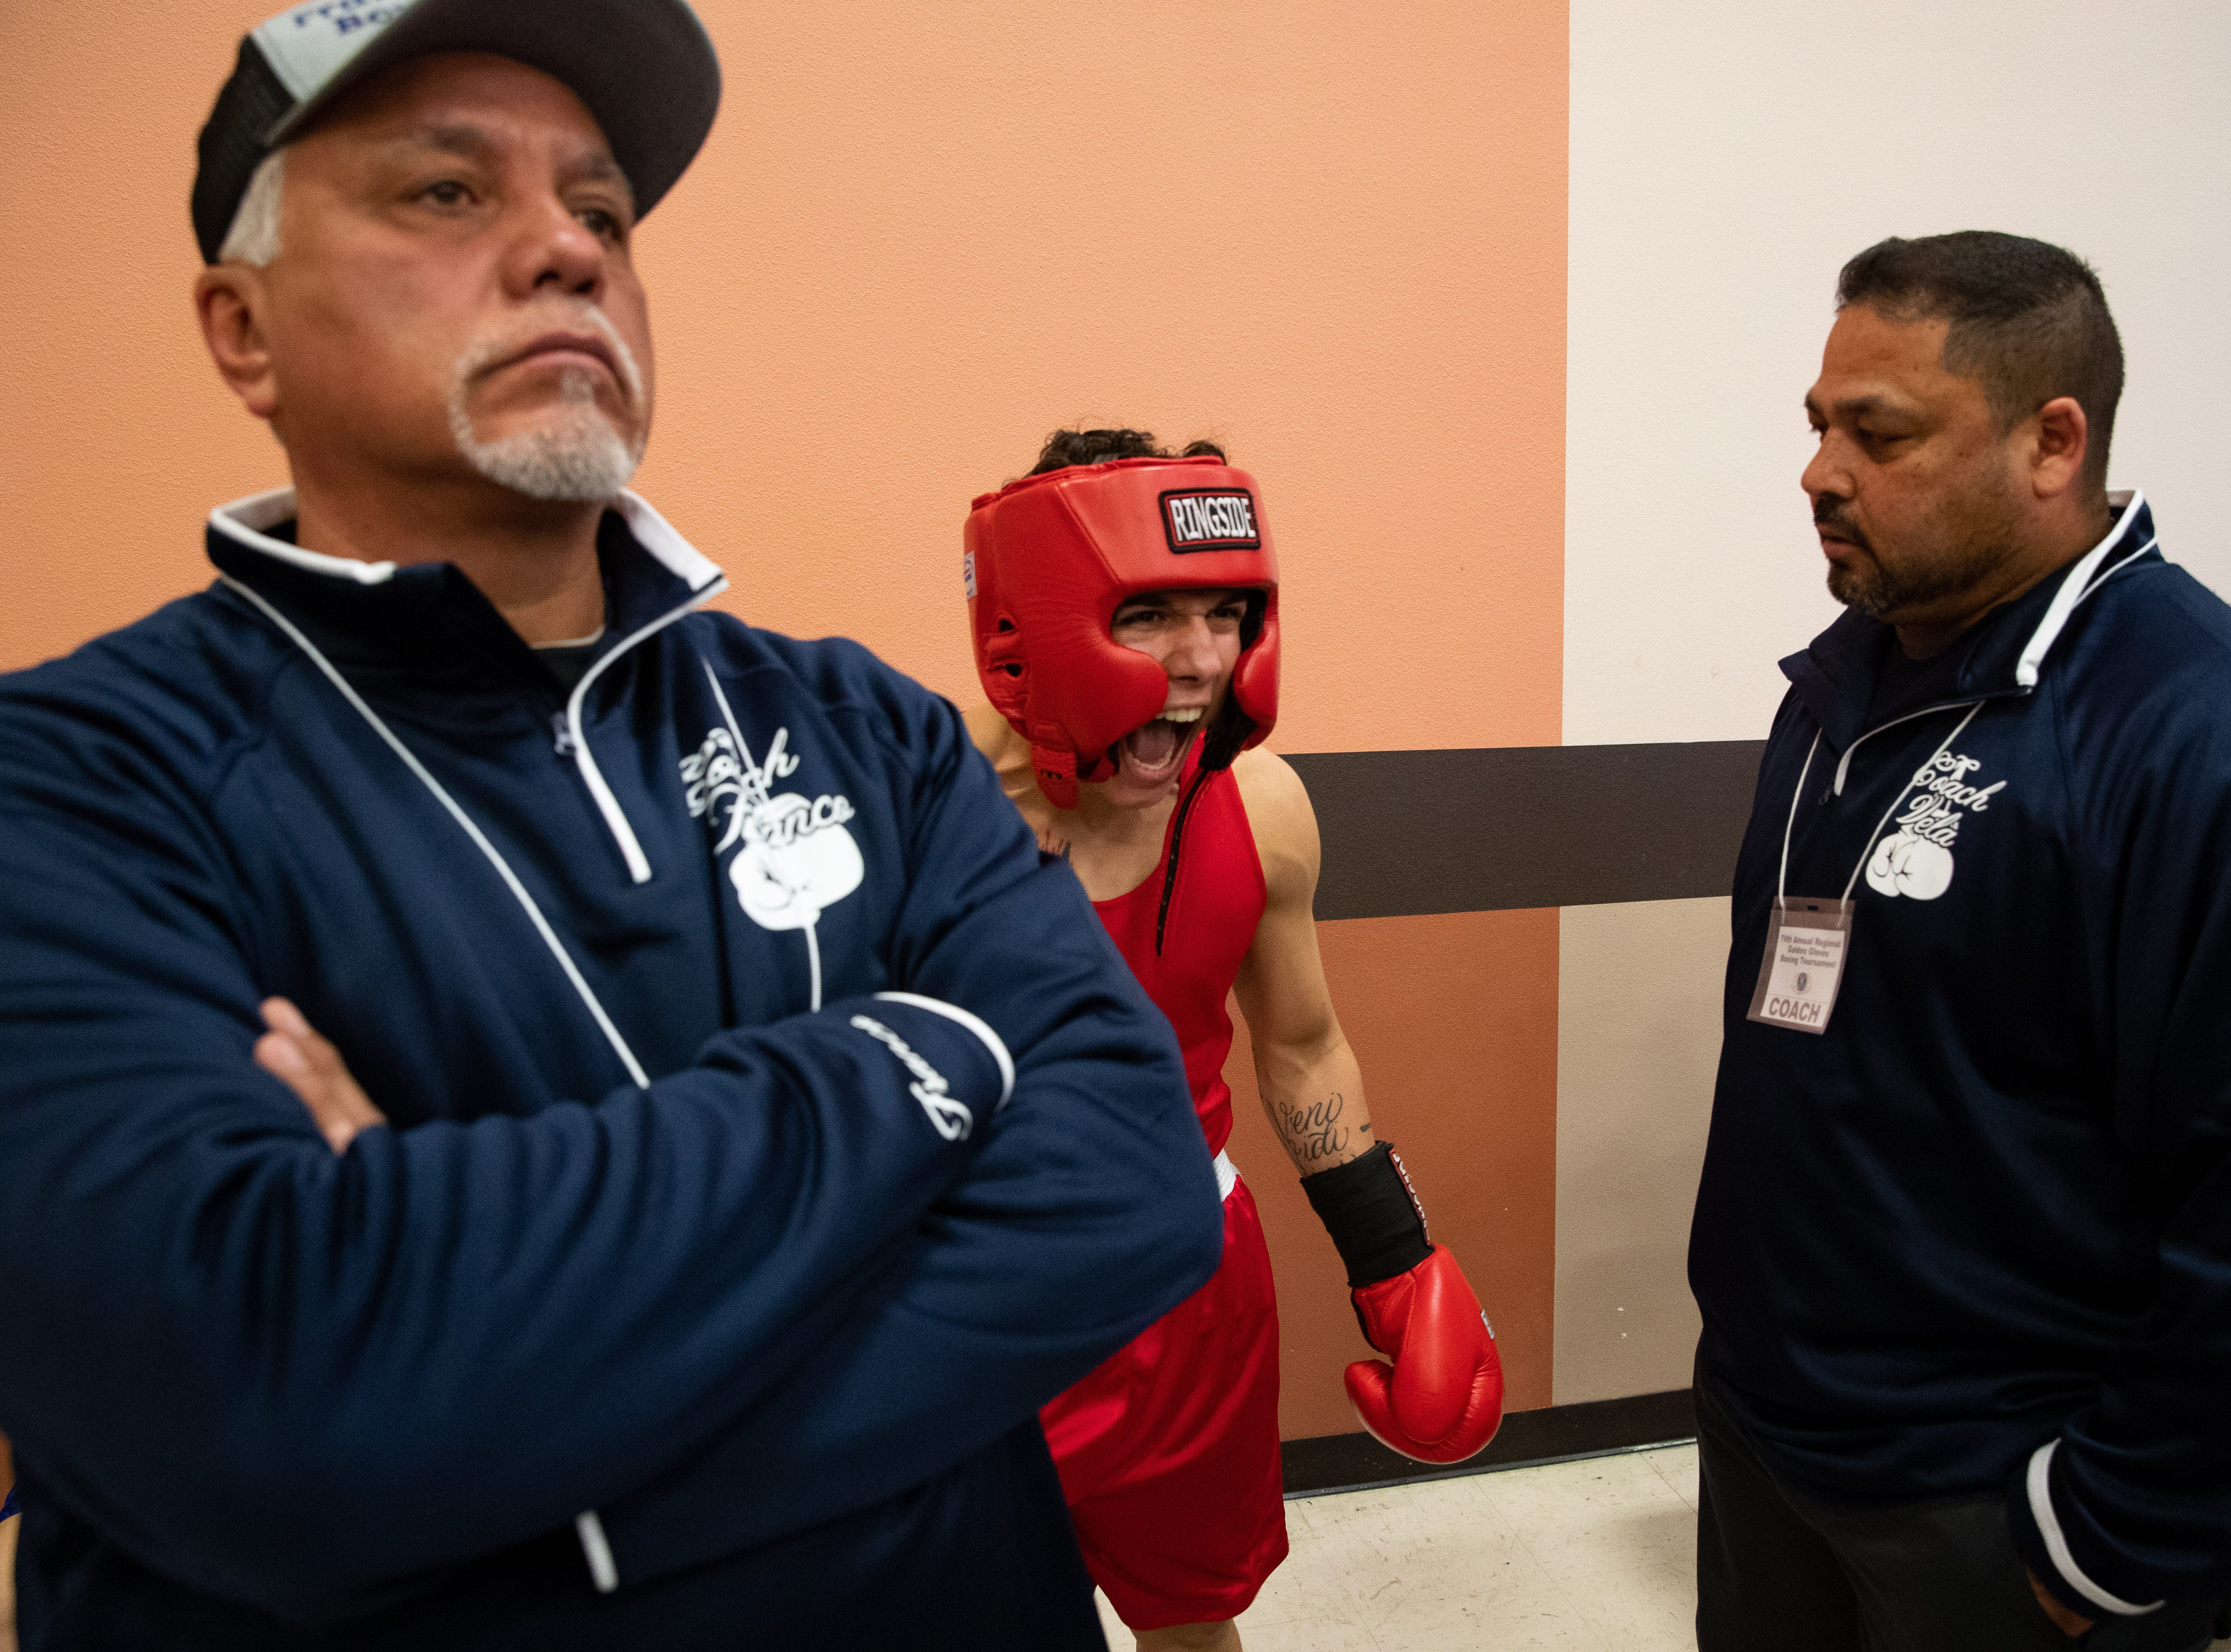 Boxers warm up during the regional golden gloves tournament at the Valencia on Saturday, Feb. 9, 2019.